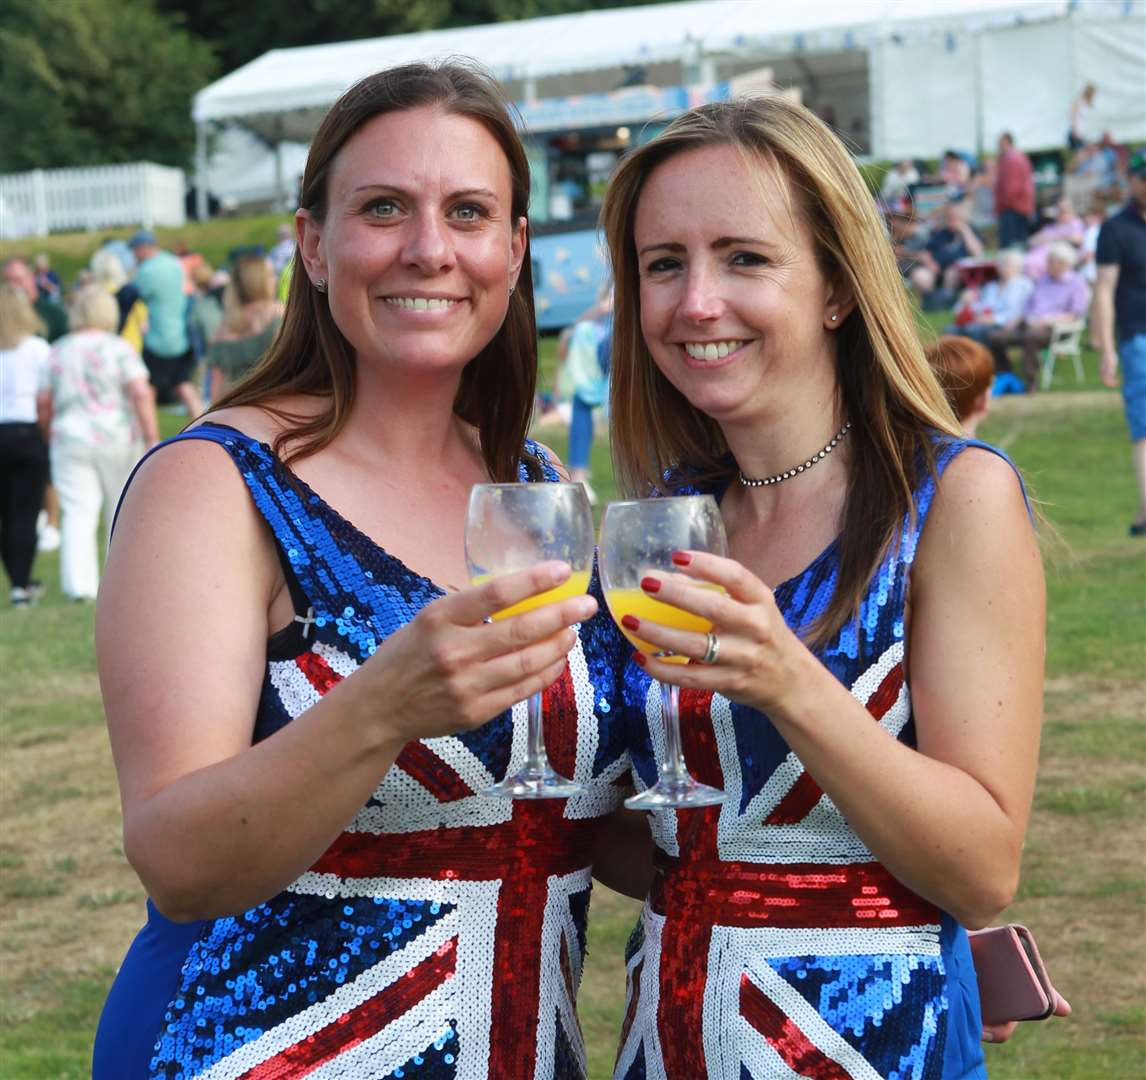 From left, Suzanne Lake and Kelly Lywood, from Sittingbourne in union jack dresses at Leeds Castle Classical Concert. Picture: John Westhrop